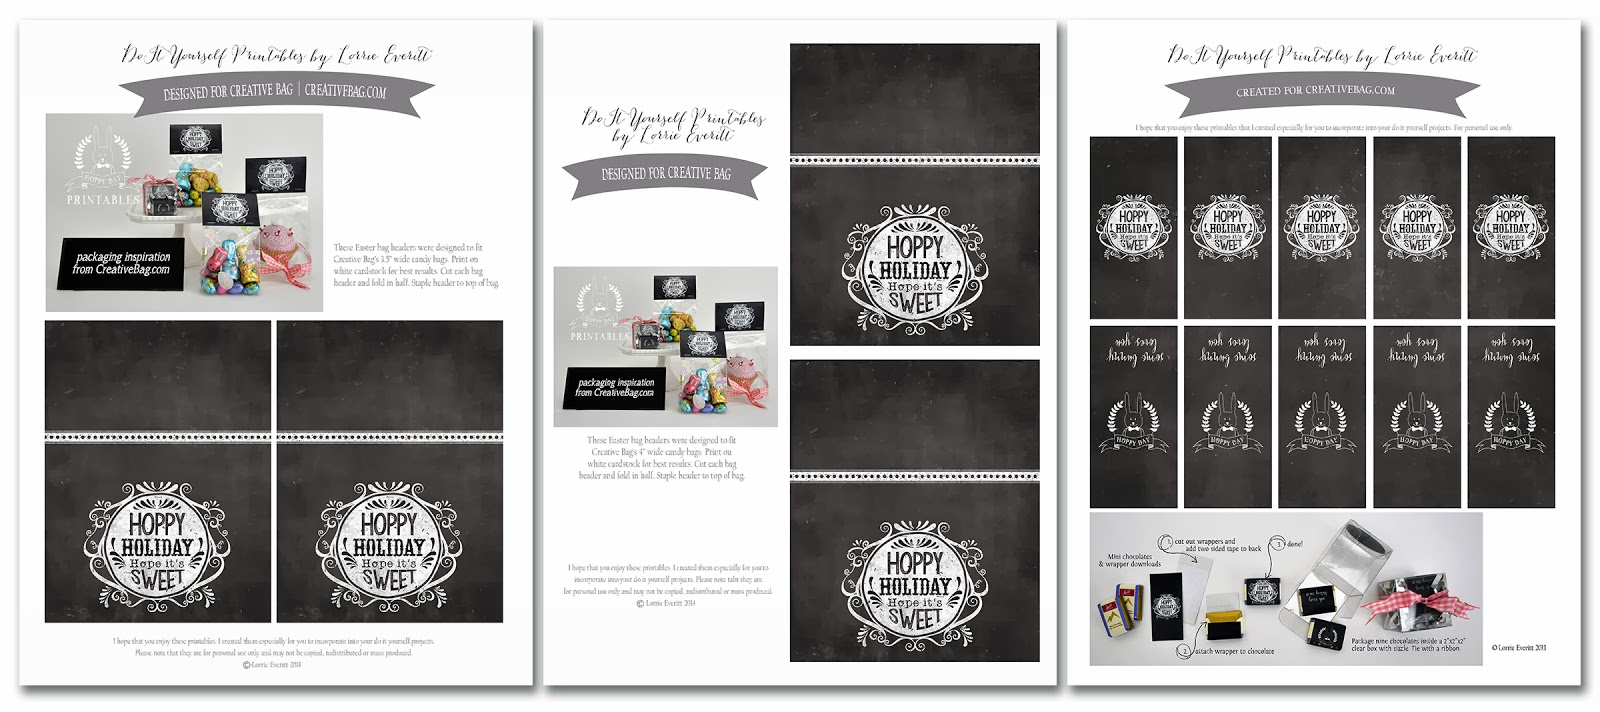 Easter packaging inspiration and free downloads   creativebag.com